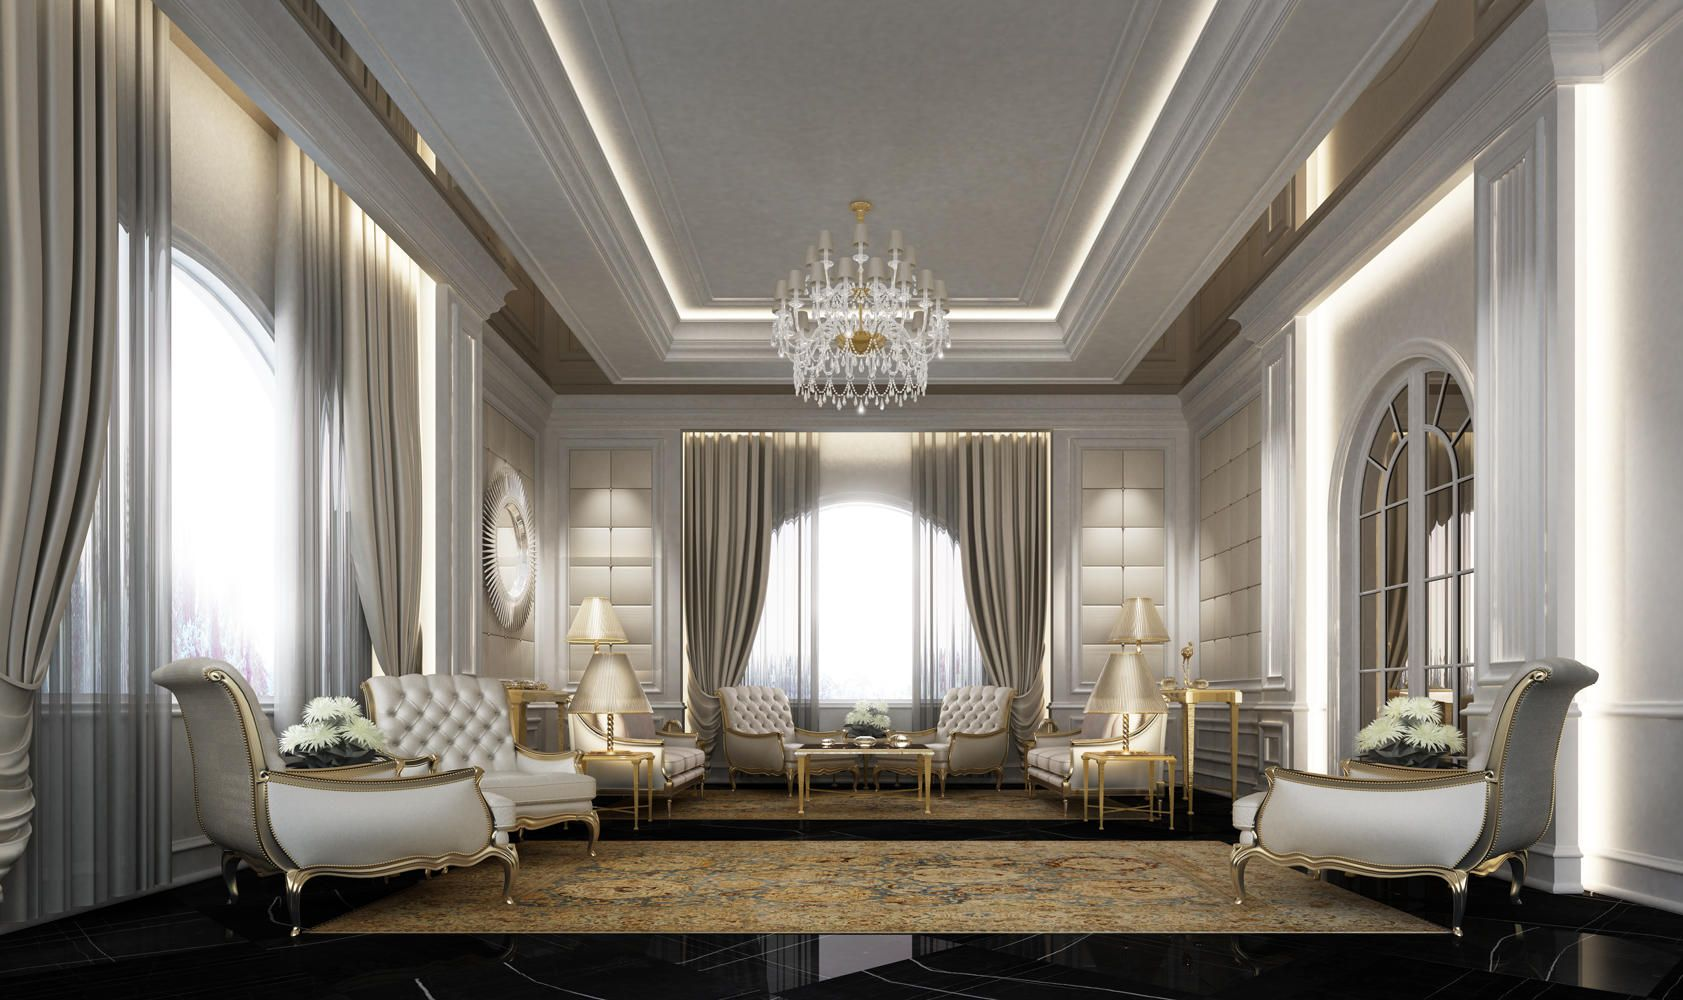 Arabic Majlis Designs Ions Design Interior Design Dubai Interior Designer Uae Middle